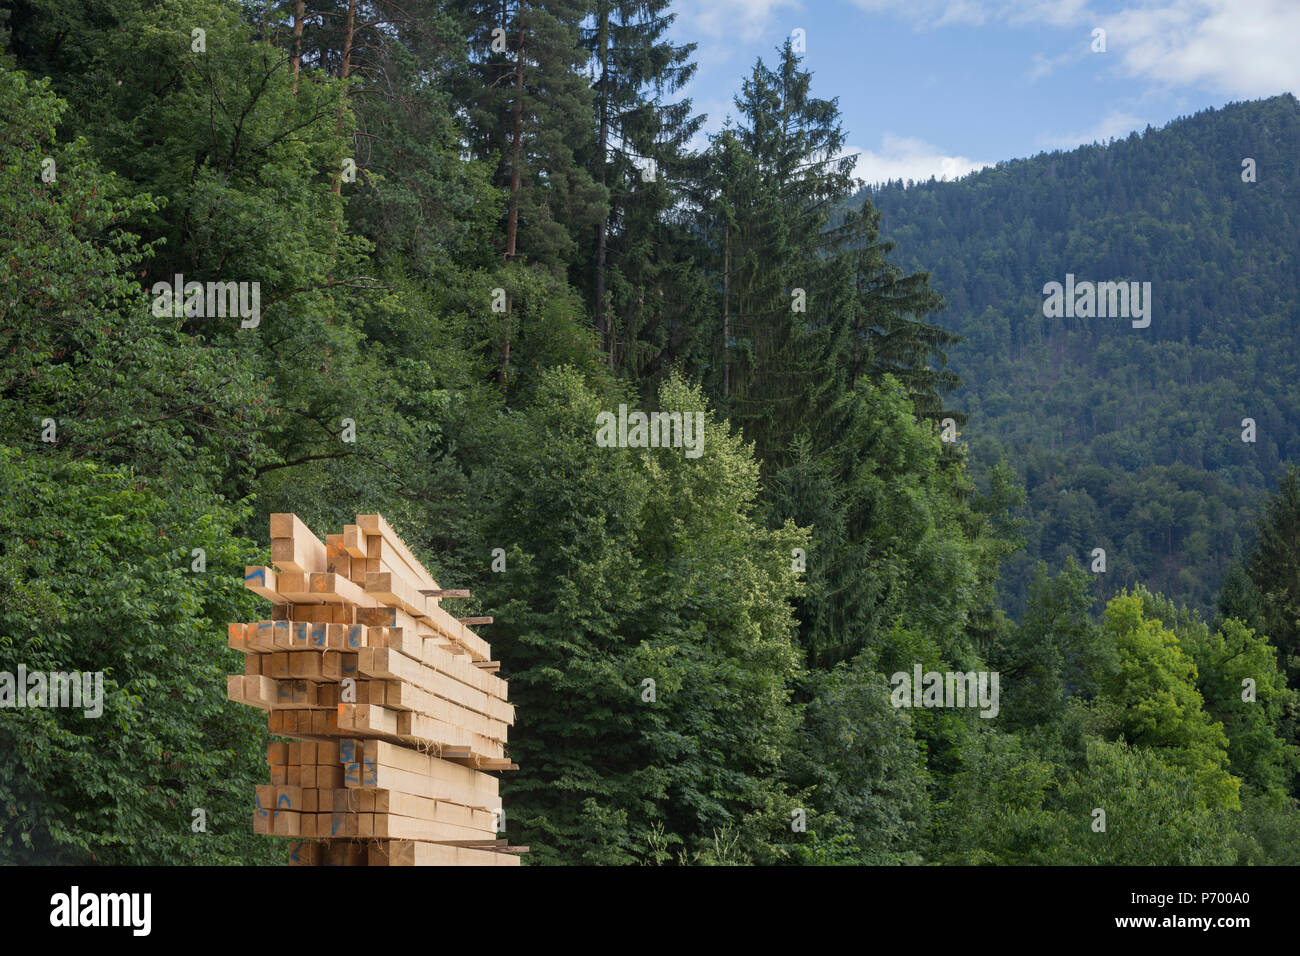 new-sawn-planks-piled-up-in-a-timber-yar